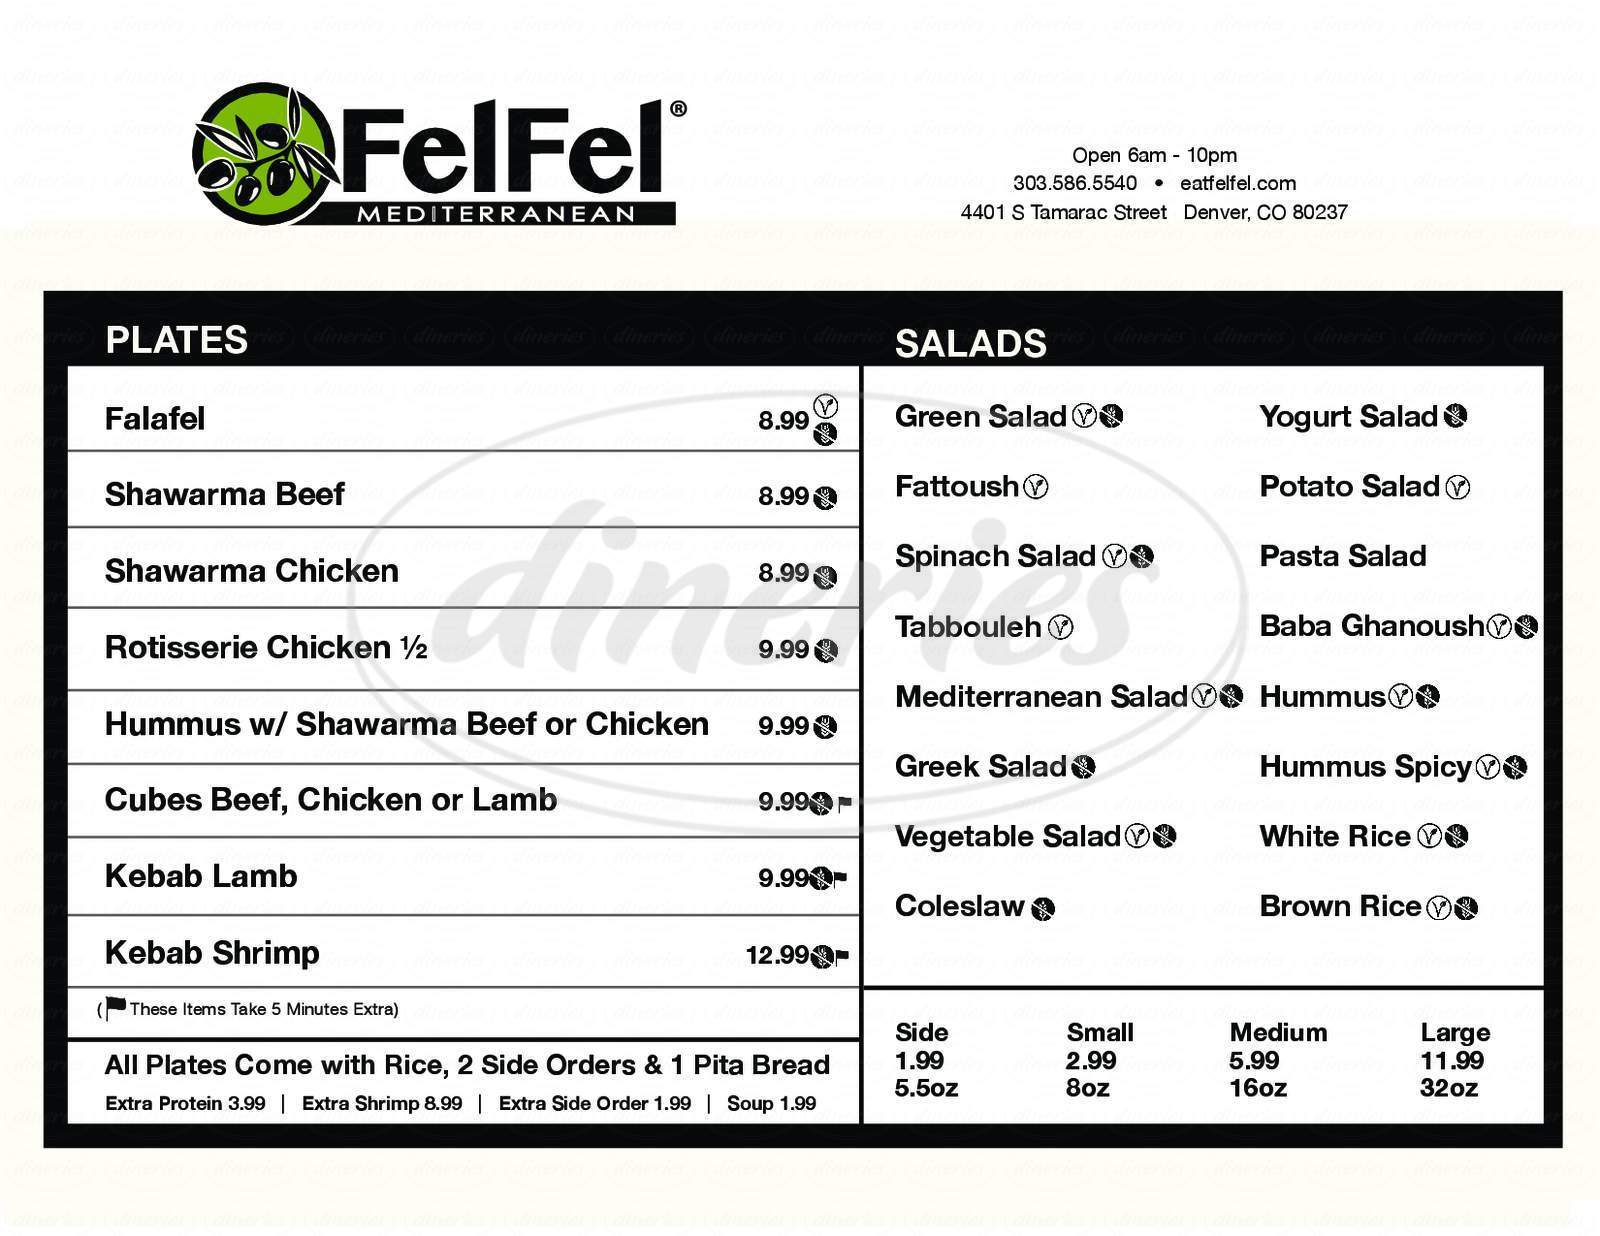 menu for FelFel Mediterranean